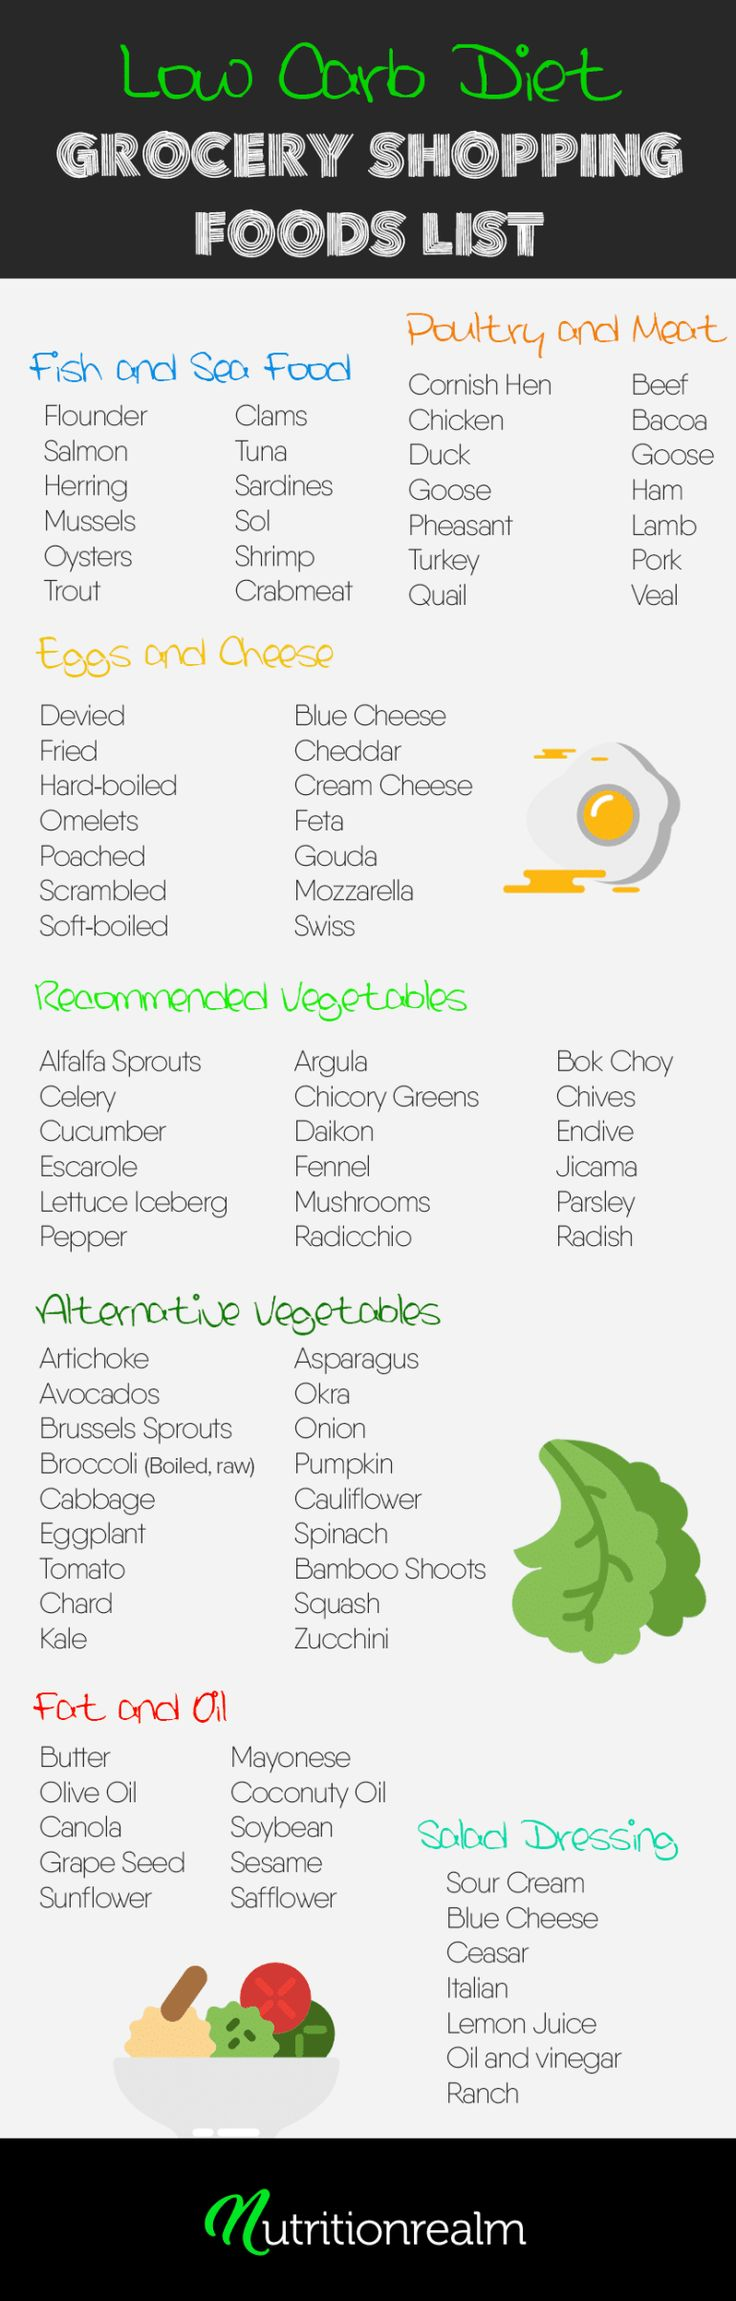 Lowcarb diet foods list for your grocery shopping